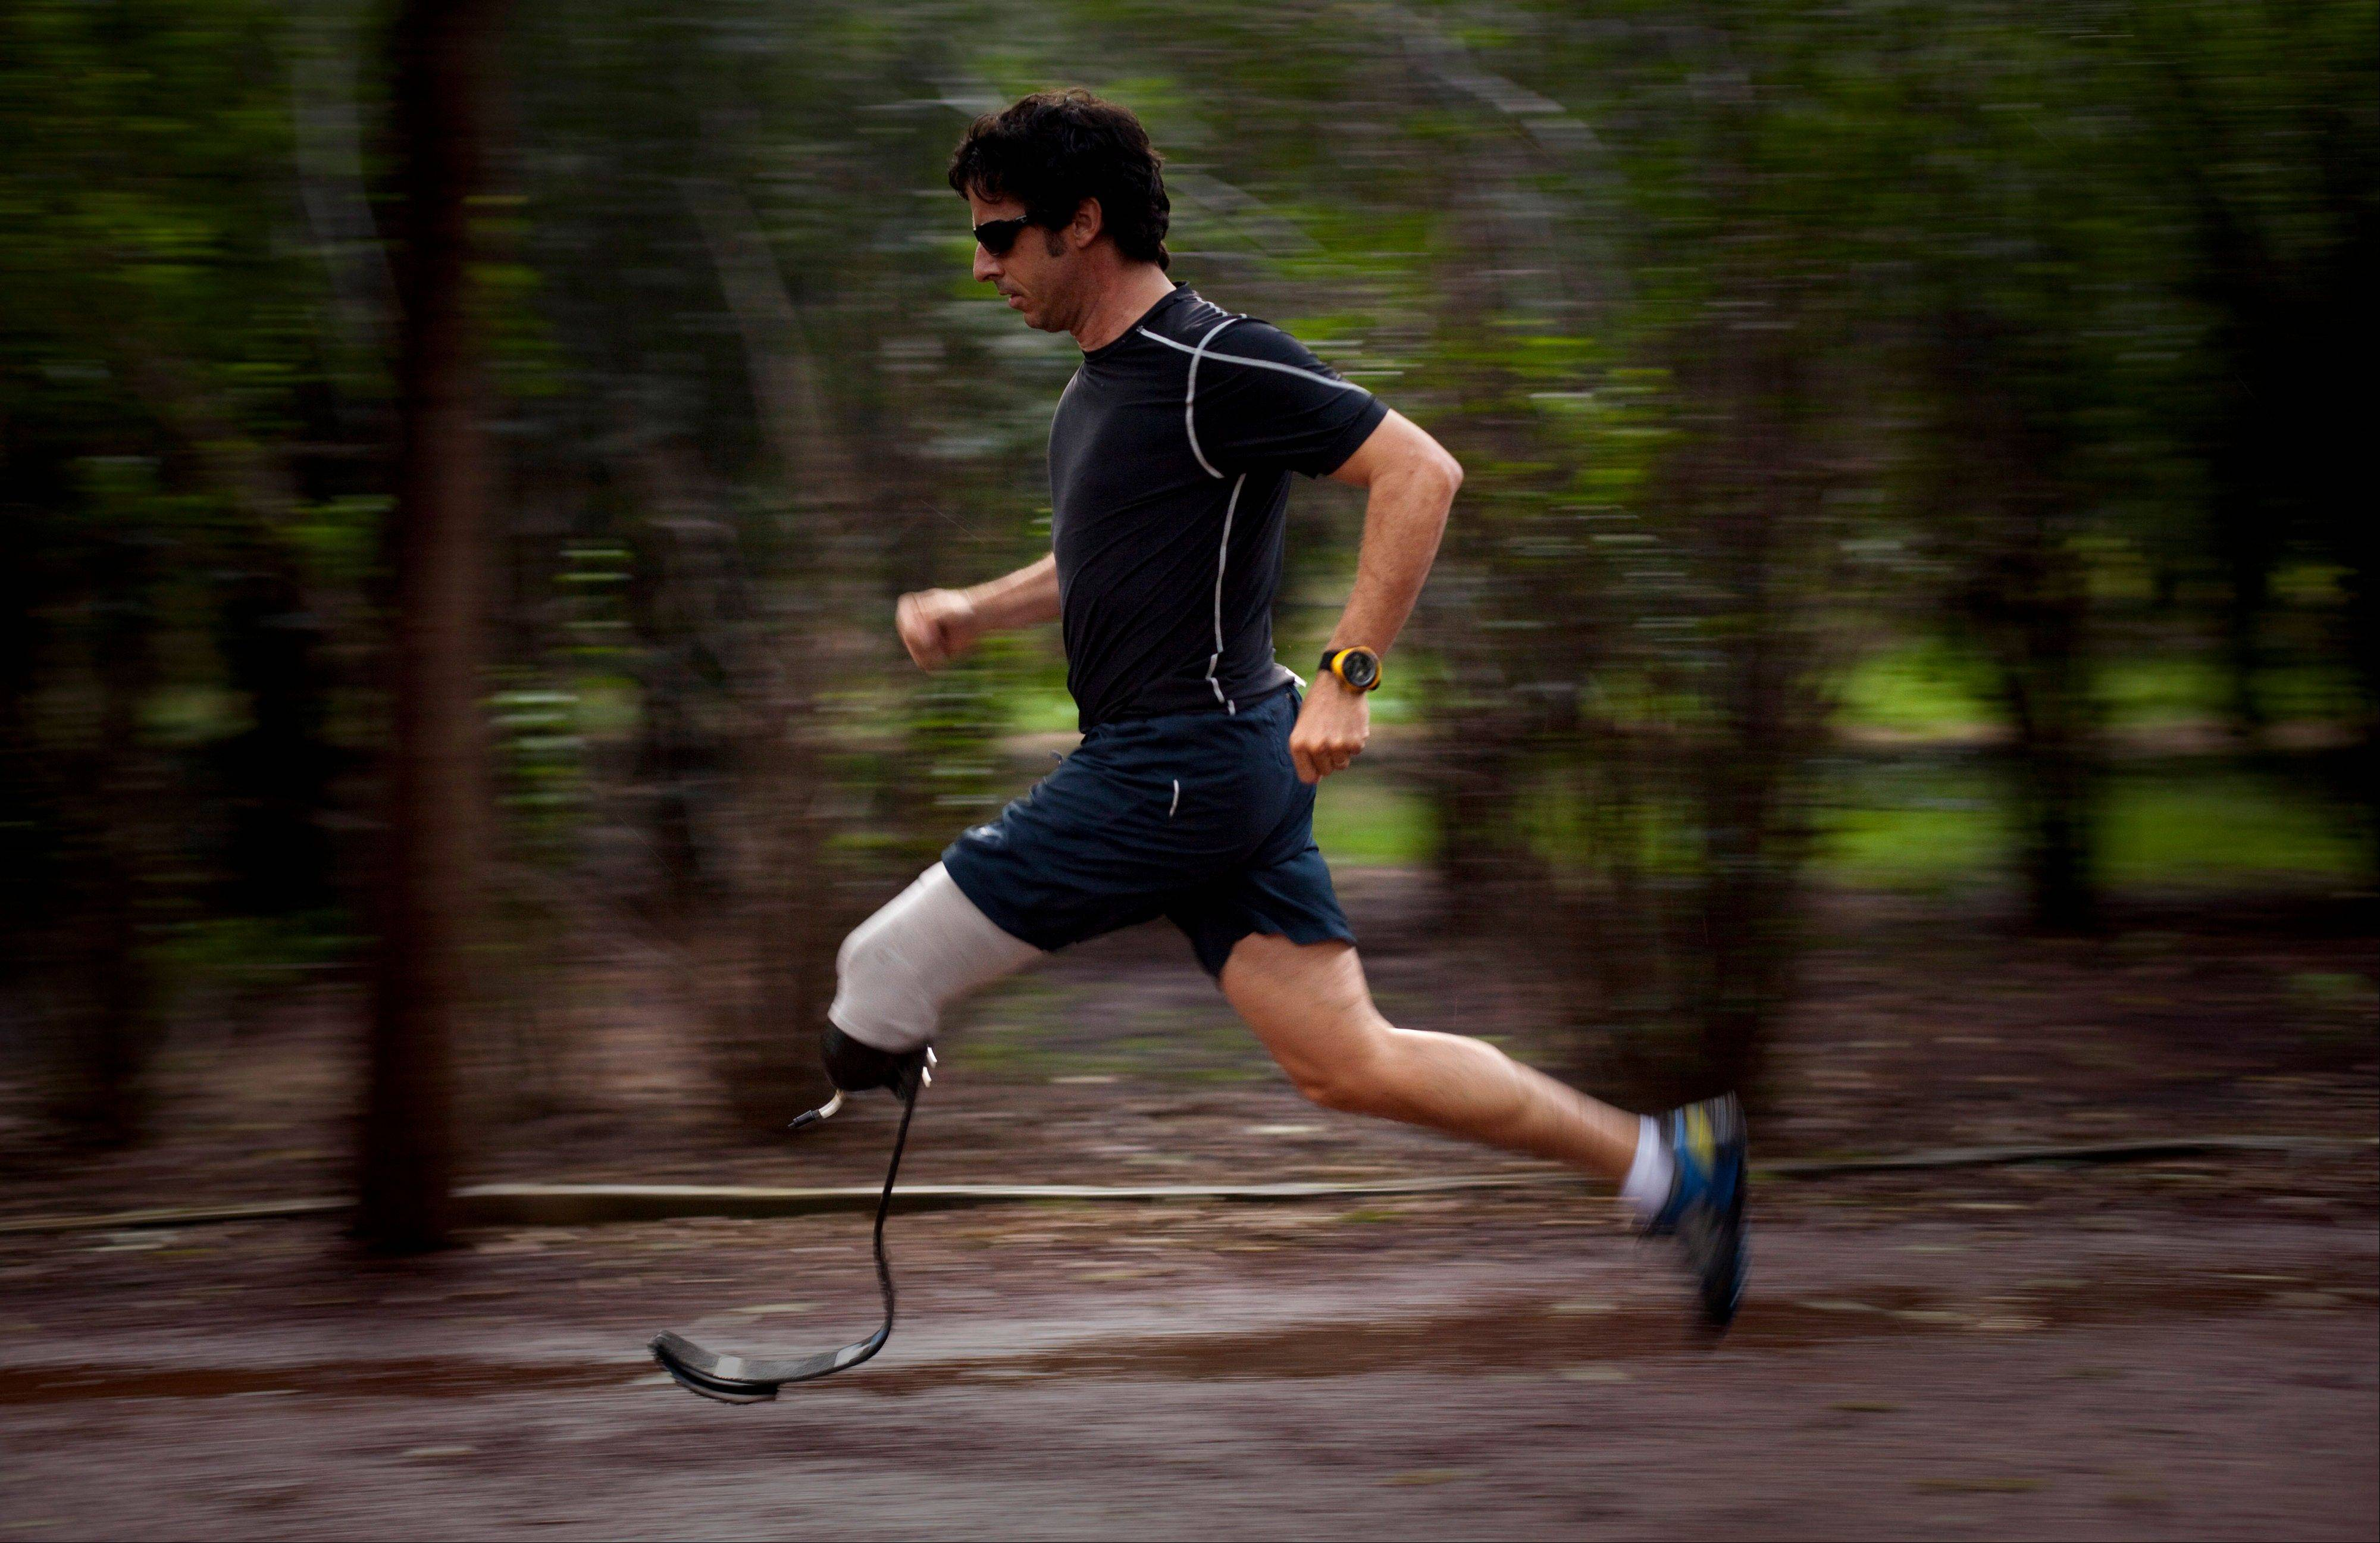 "In this 2010 photo, Associated Press photographer Emilio Morenatti runs in a Mexico City public park, one year after he lost his leg during an attack while on assignment in Afghanistan. ""If you don't confront the feelings of loss, the fact that your world has changed, you never fully recover from the amputation,"" writes Morenatti."